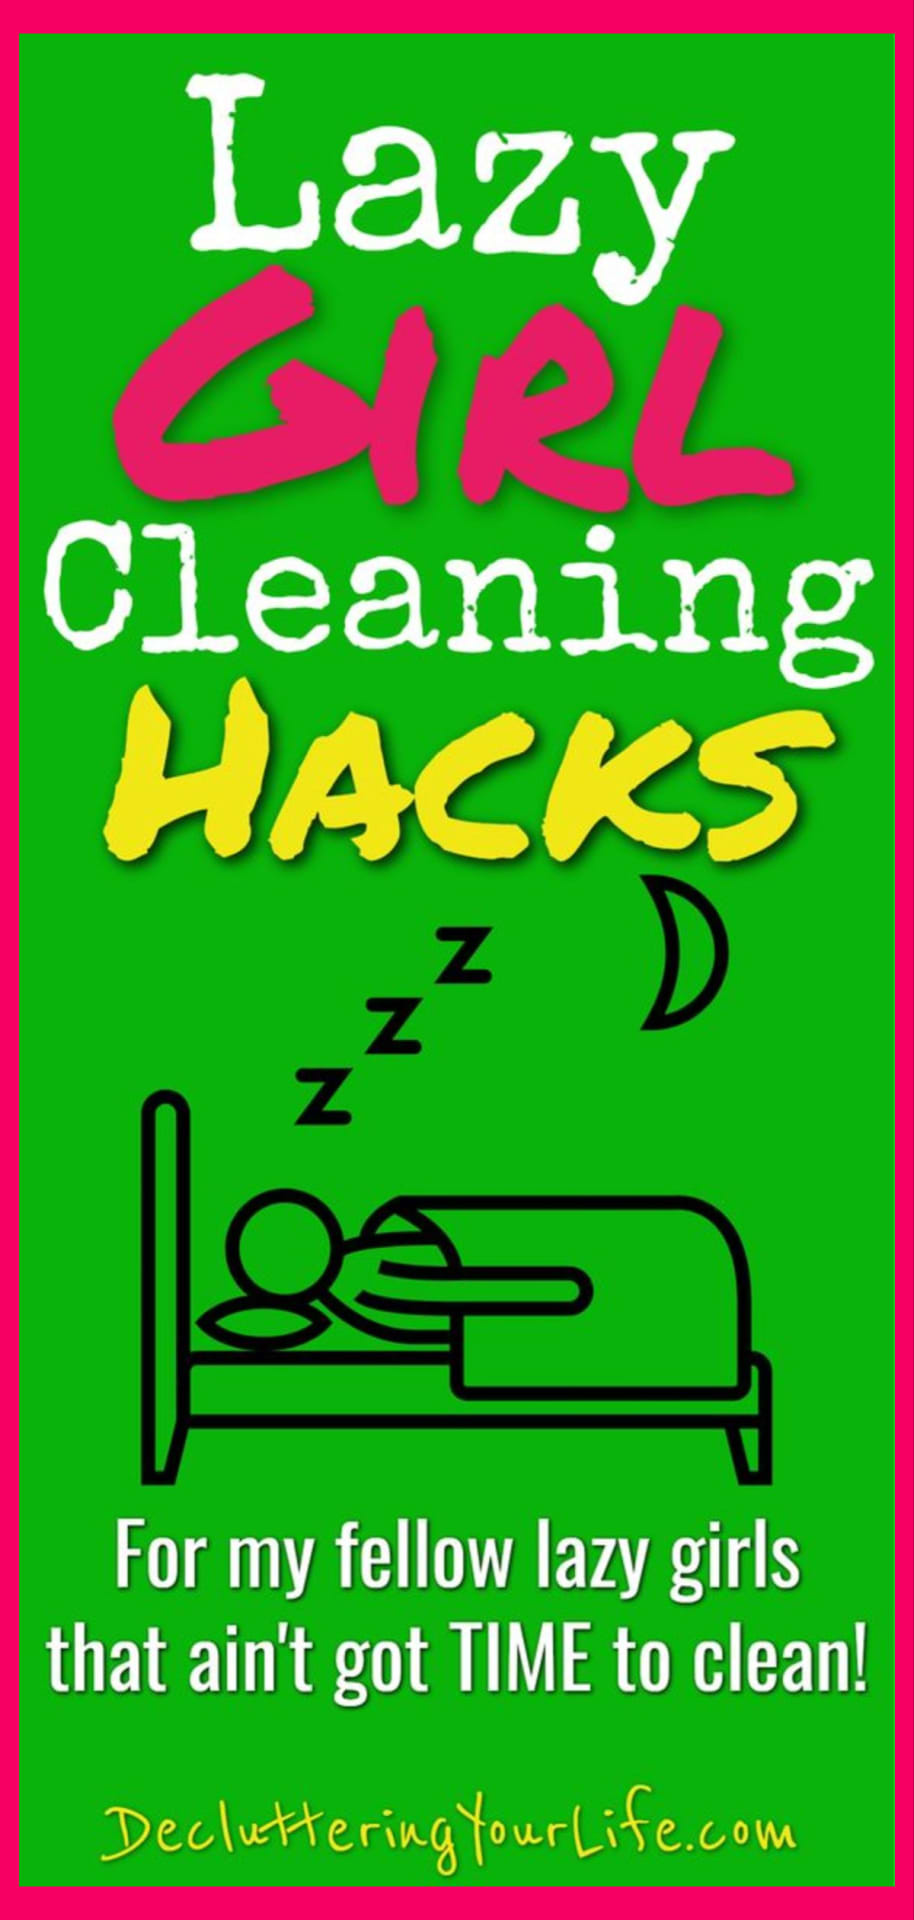 Lazy Girl Cleaning Hacks – Simple Cleaning Tips for Lazy People (lazy moms too) - Lazy cleaning hacks, lazy cleaning schedule, lazy cleaning routine and more SIMPLE lazy cleaning hacks & tips and housekeeping cleaning hacks tips and tricks everyone should know. Life changing helpful hints for how to clean when your house is a mess and you don't WANT to clean.